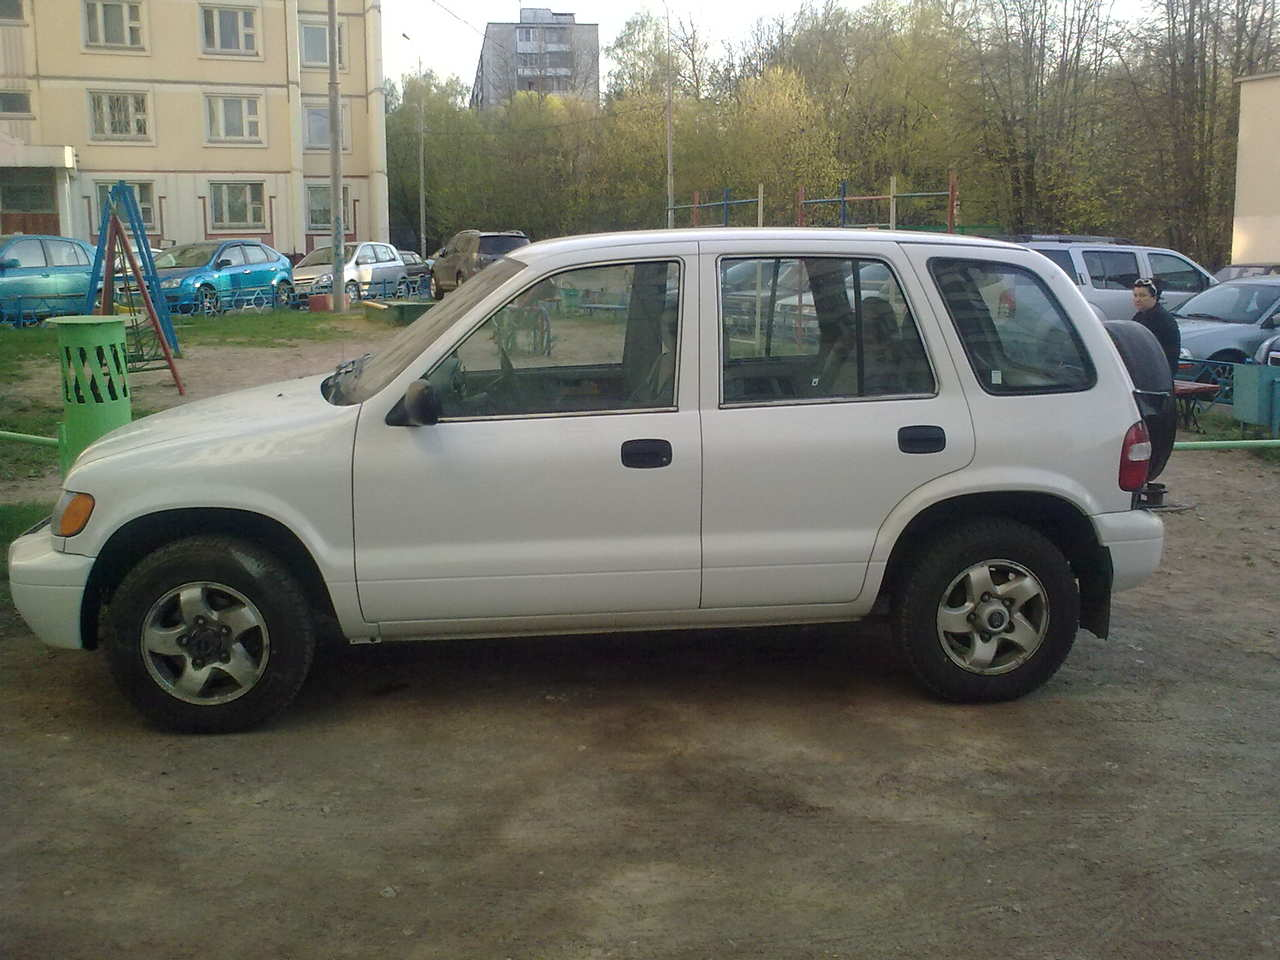 used 2000 kia sportage photos 2000cc automatic for sale. Black Bedroom Furniture Sets. Home Design Ideas